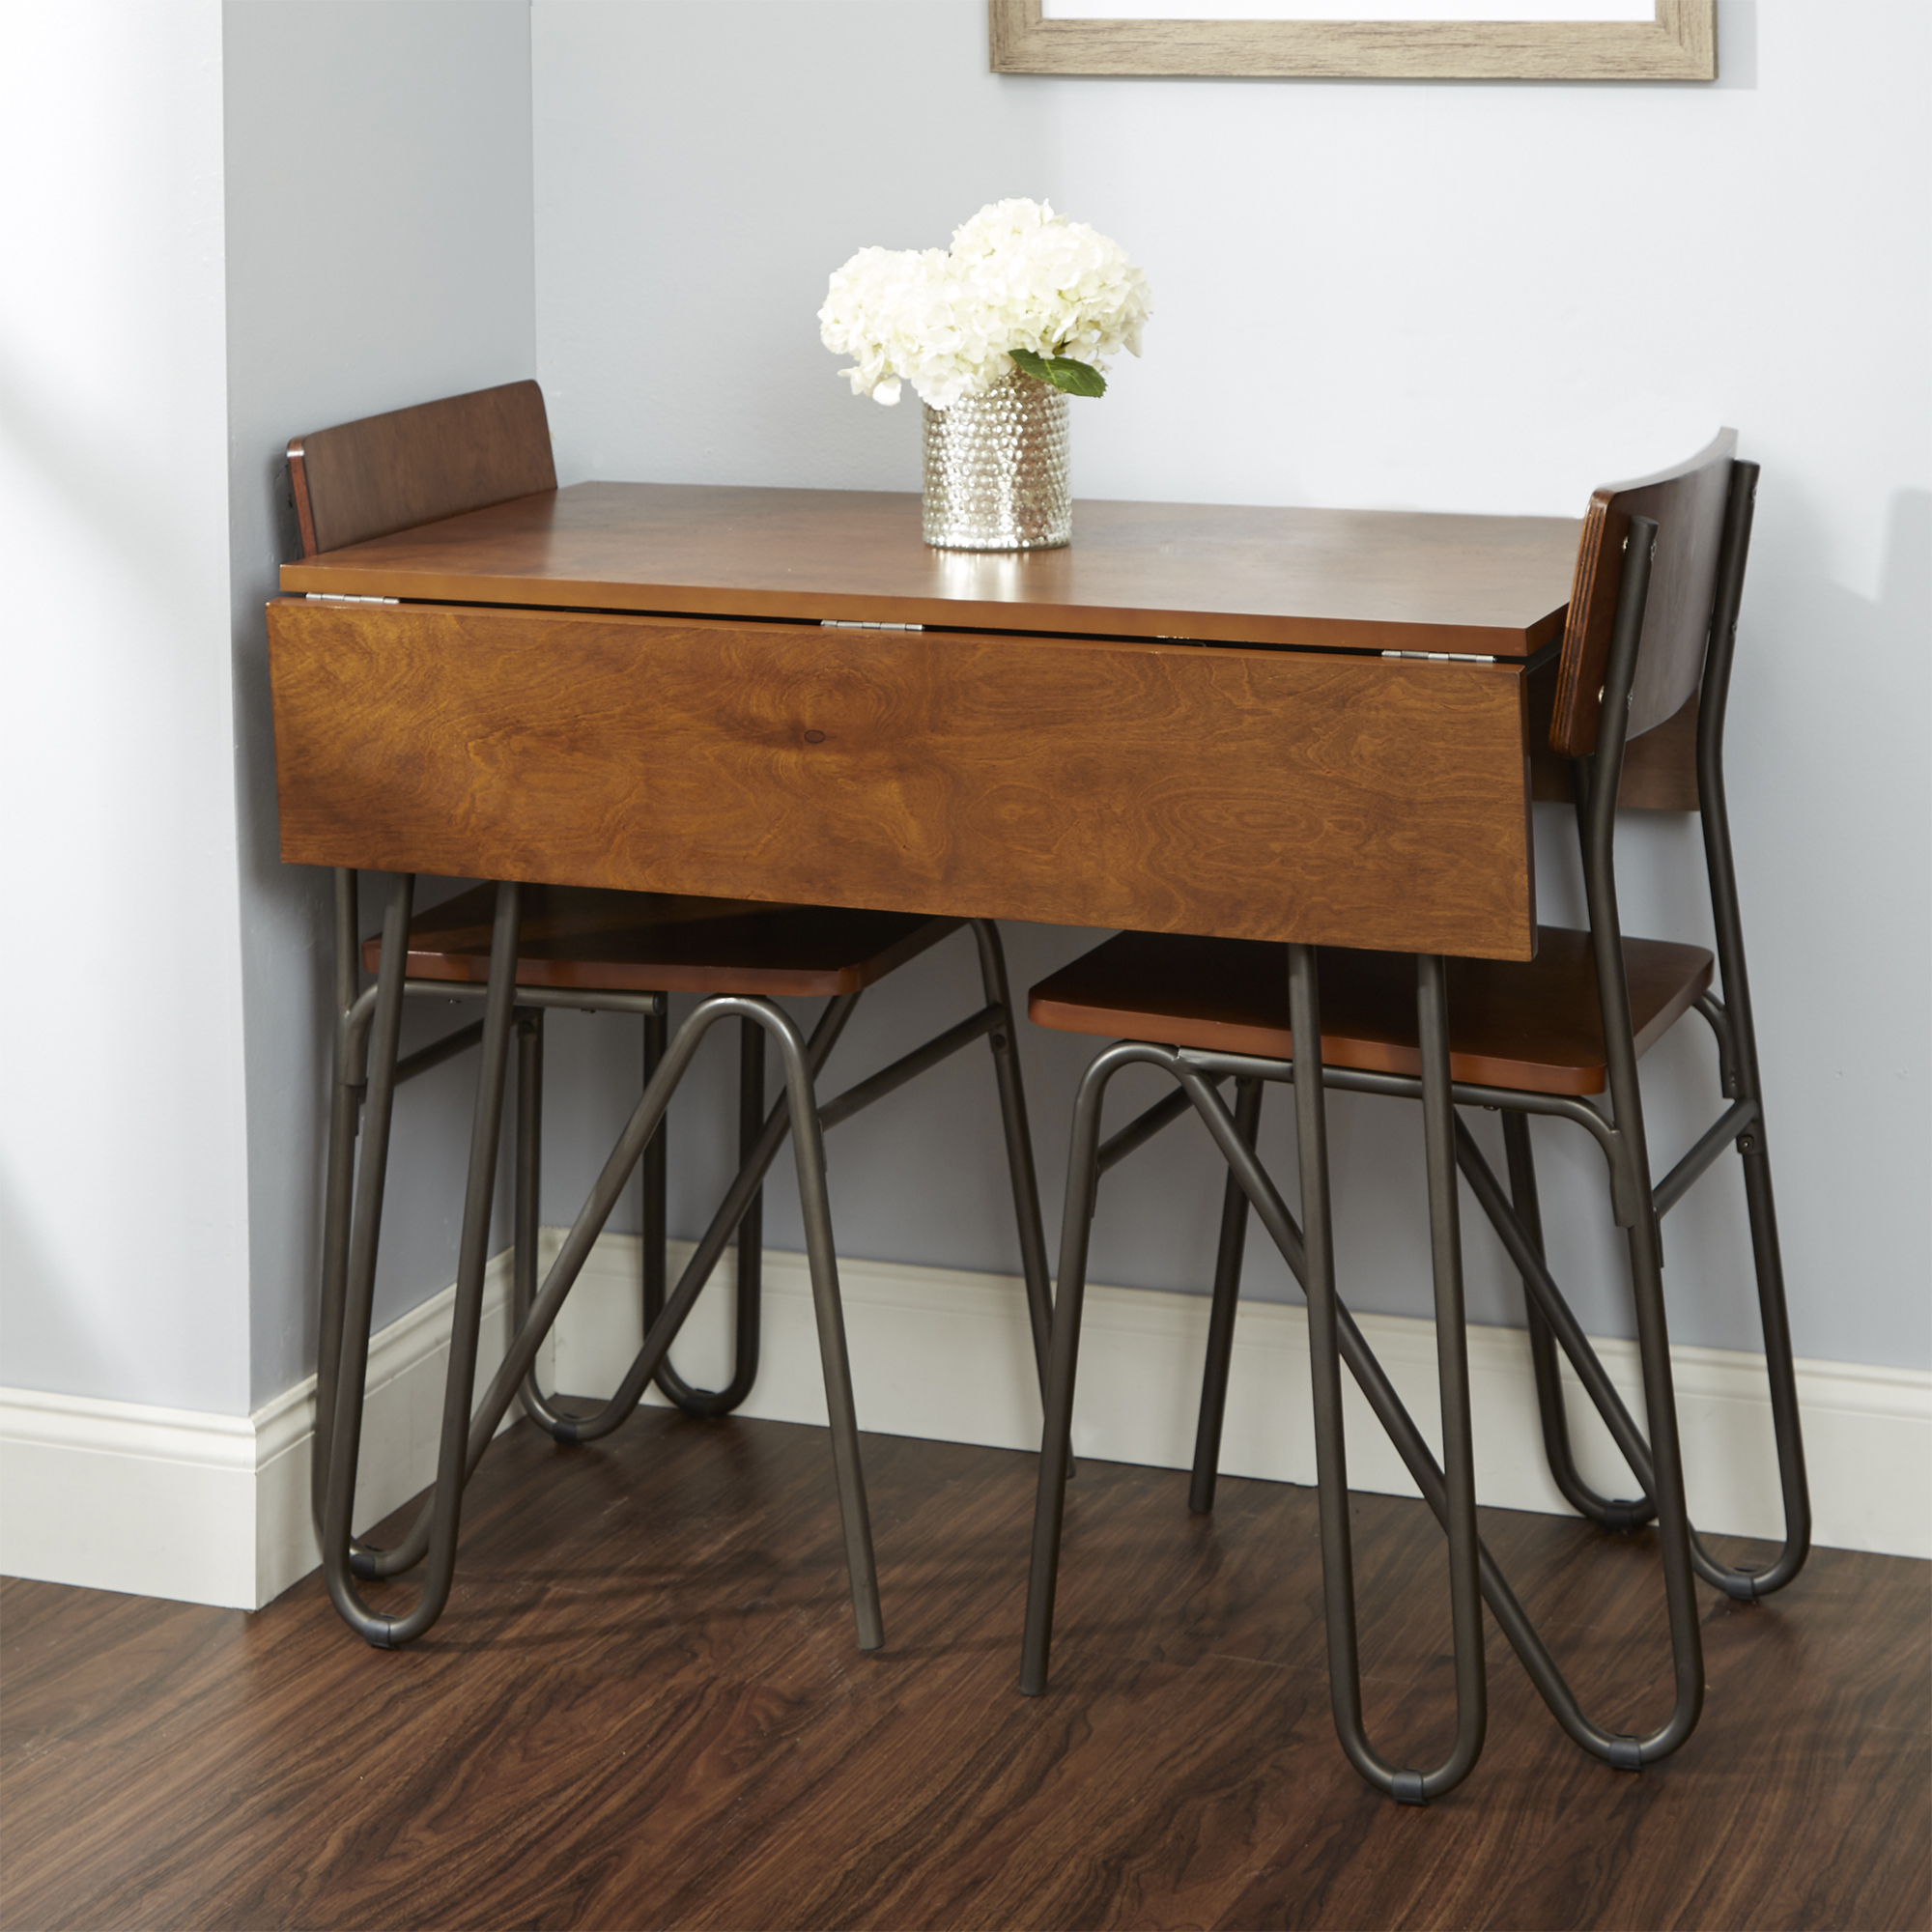 Silverwood Henry Wood And Metal Drop Leaf Table With Within 2017 Adams Drop Leaf Trestle Dining Tables (View 4 of 15)